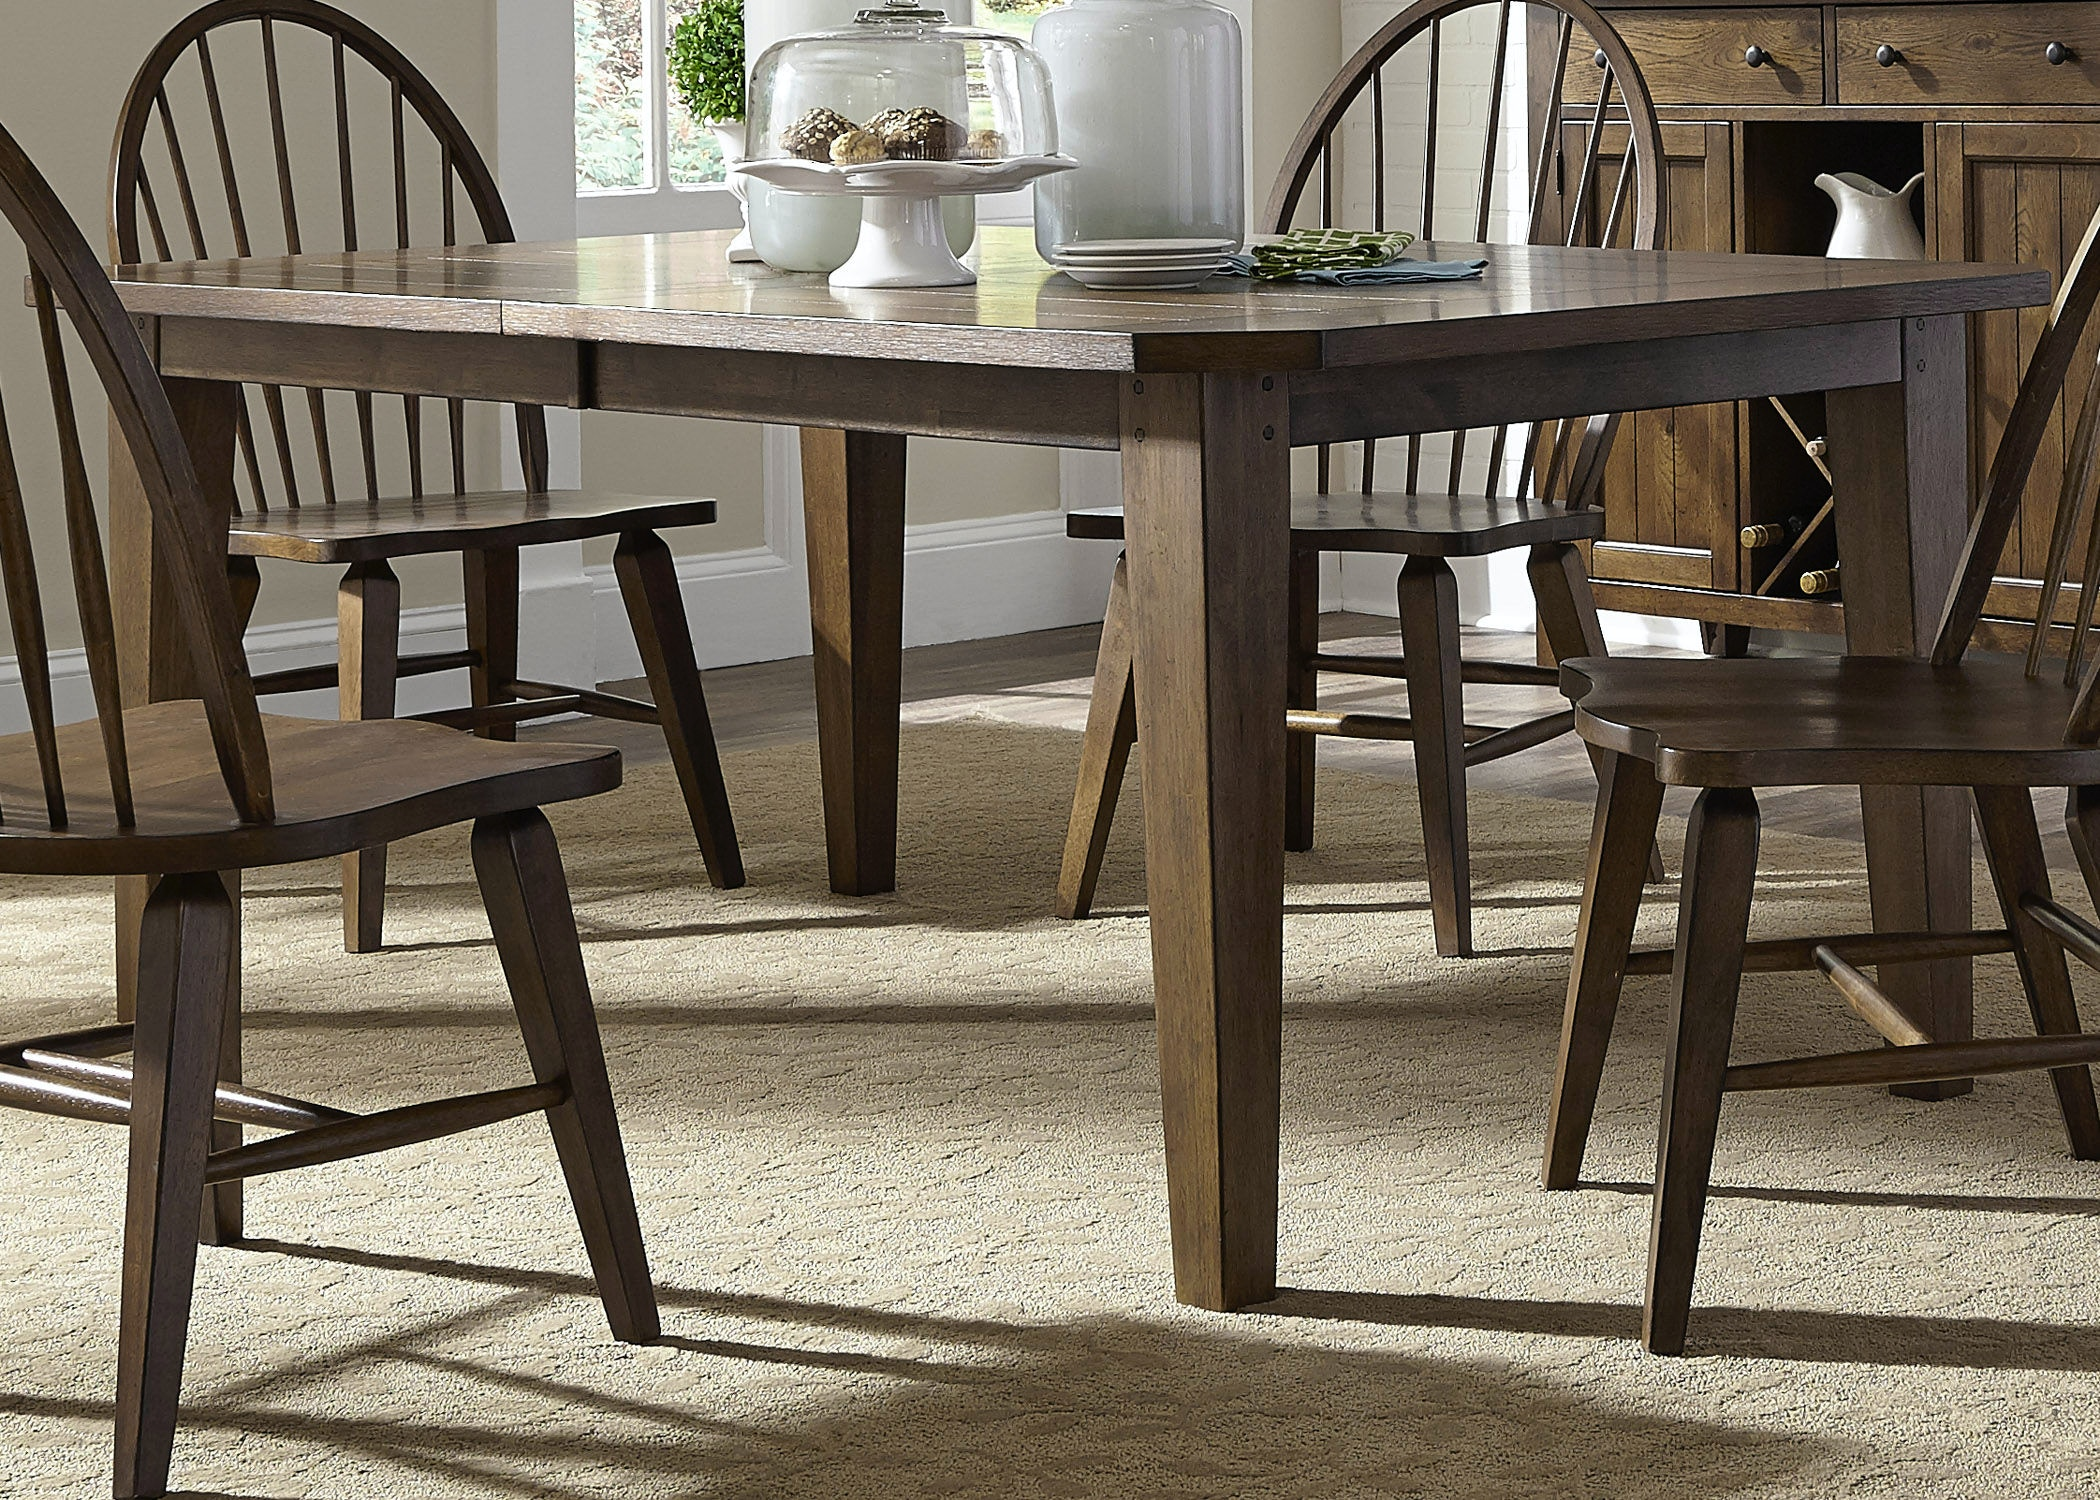 High Quality Liberty Furniture Dining Room Rectangular Leg Table 382 T4408   High  Country Furniture U0026 Design   Waynesville, Asheville And Hendersonville, NC